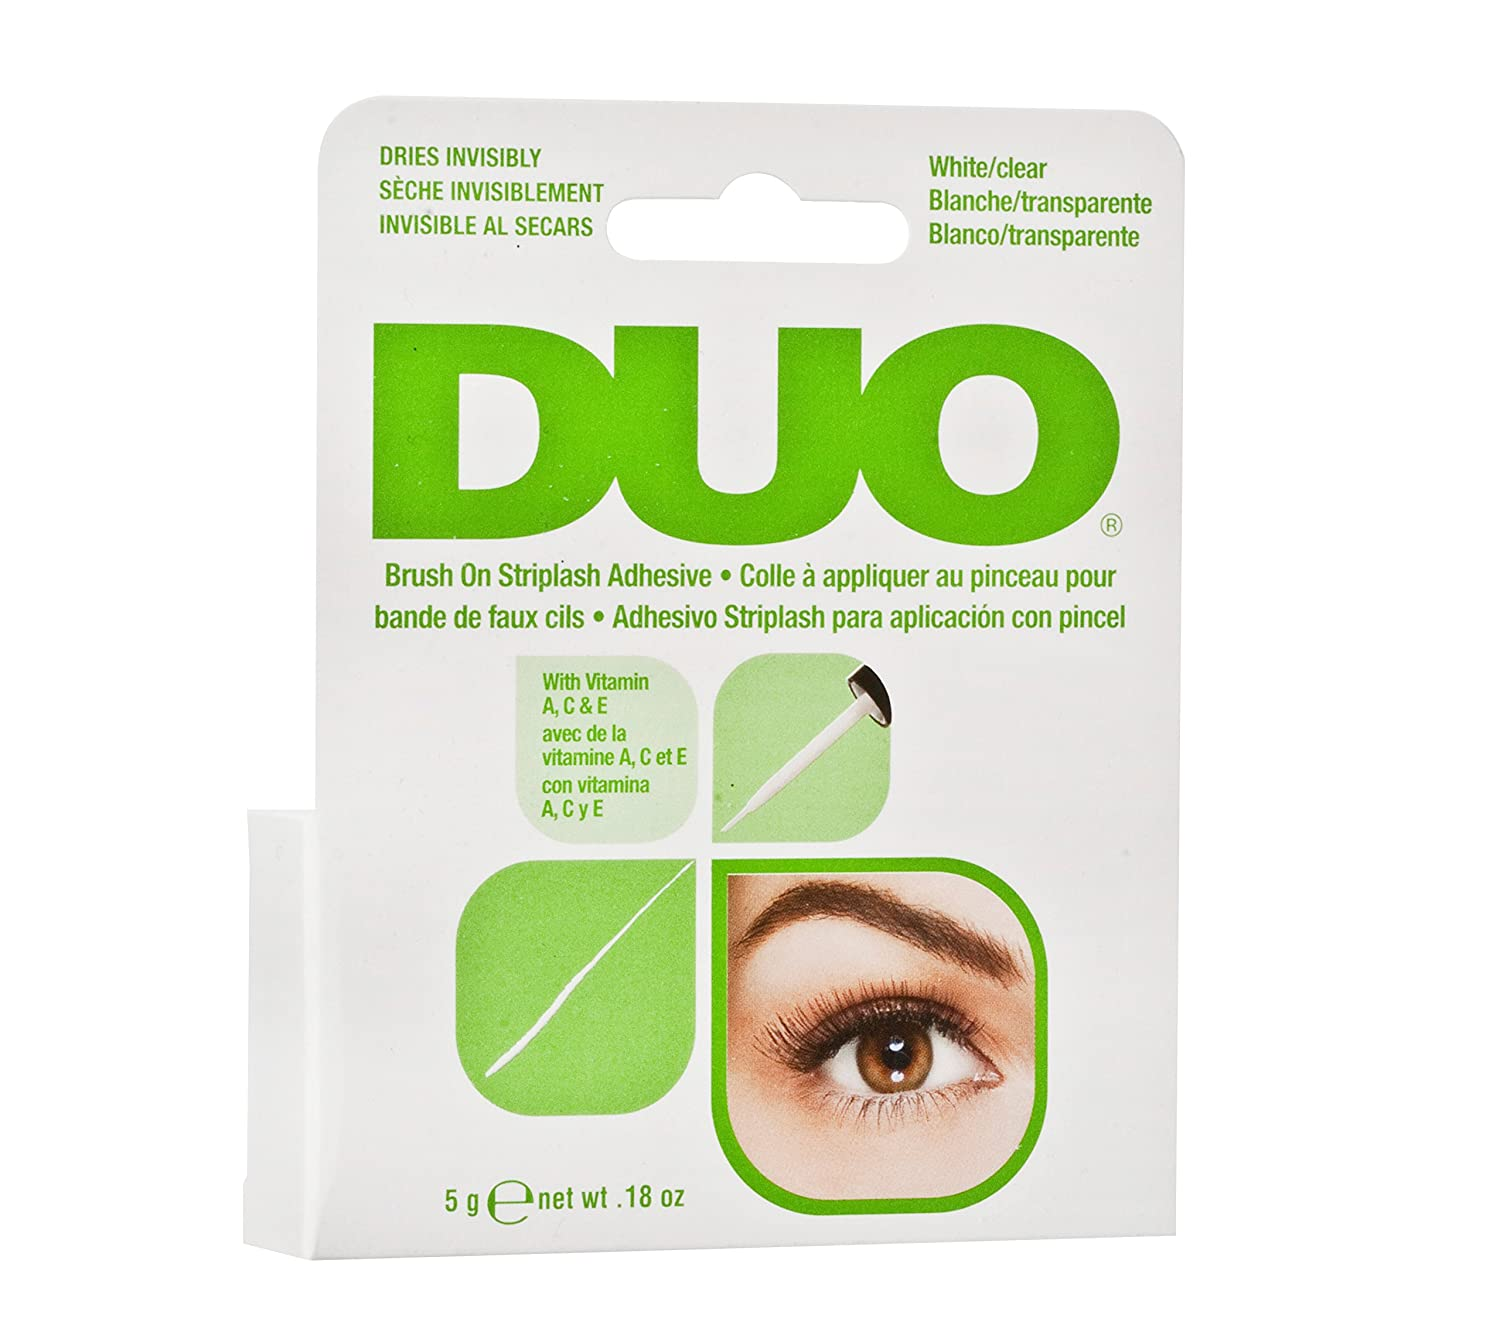 DUO Brush-On Lash Adhesive with Vitamins A, C & E, Clear, 0.18 oz Ardell AII56812B